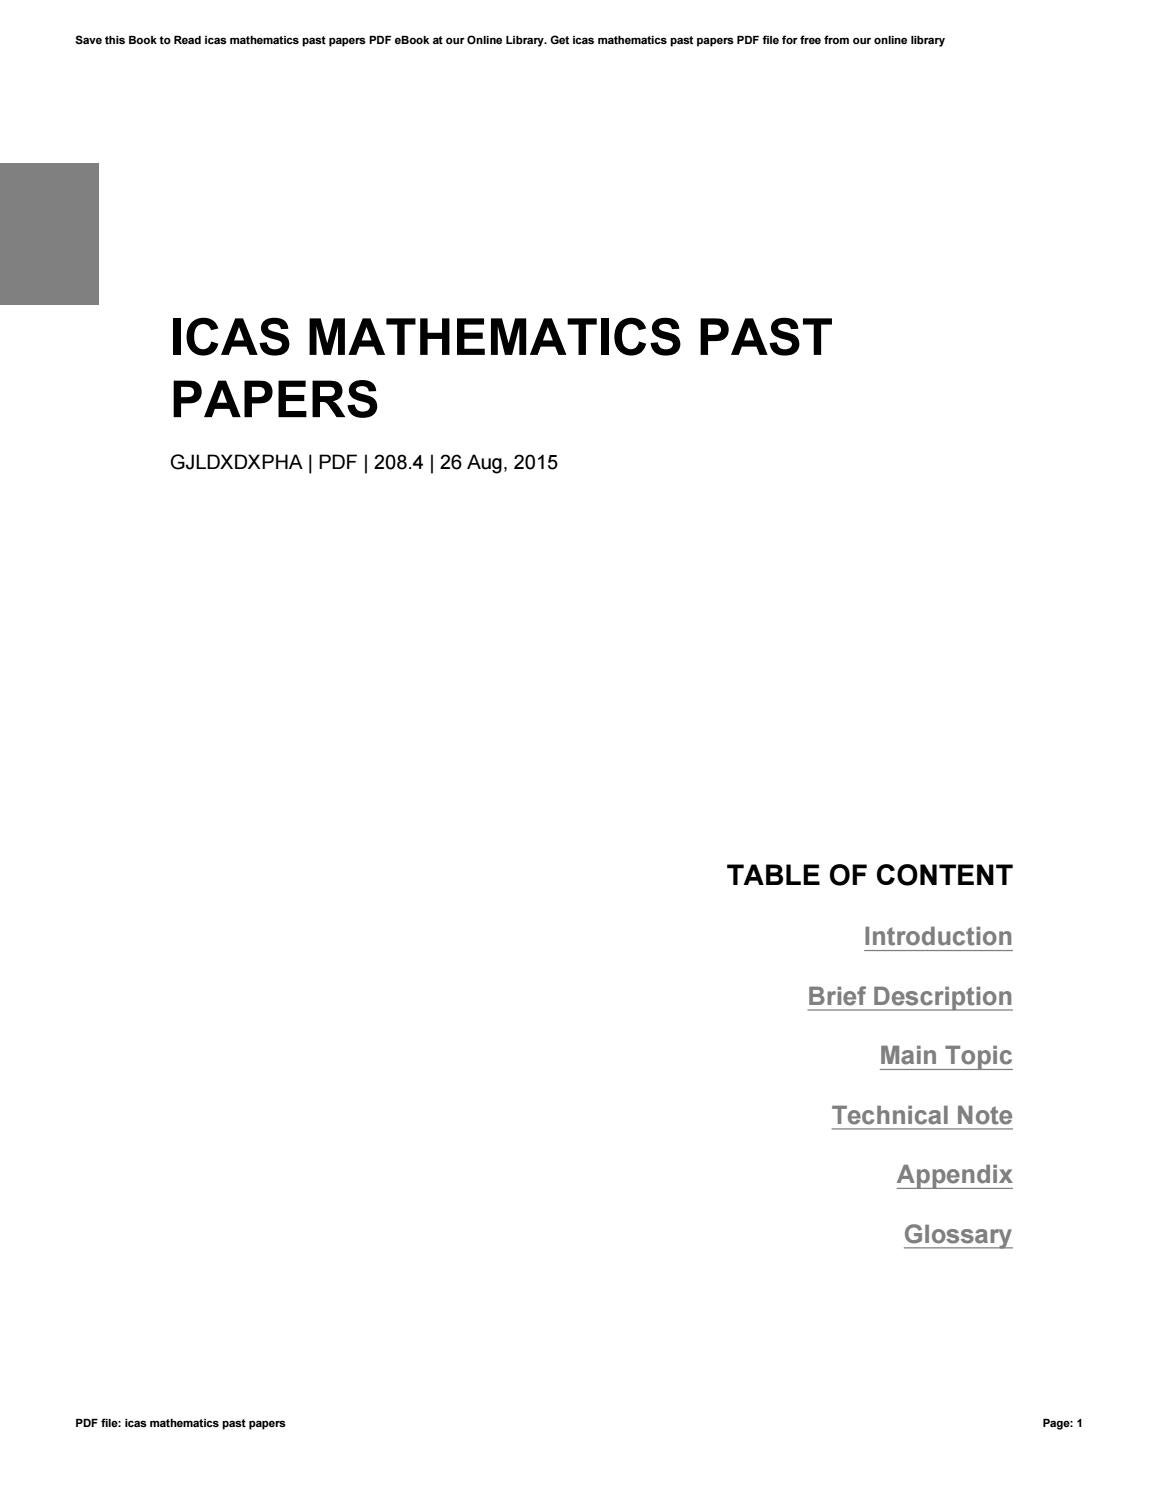 icas past papers pdf download